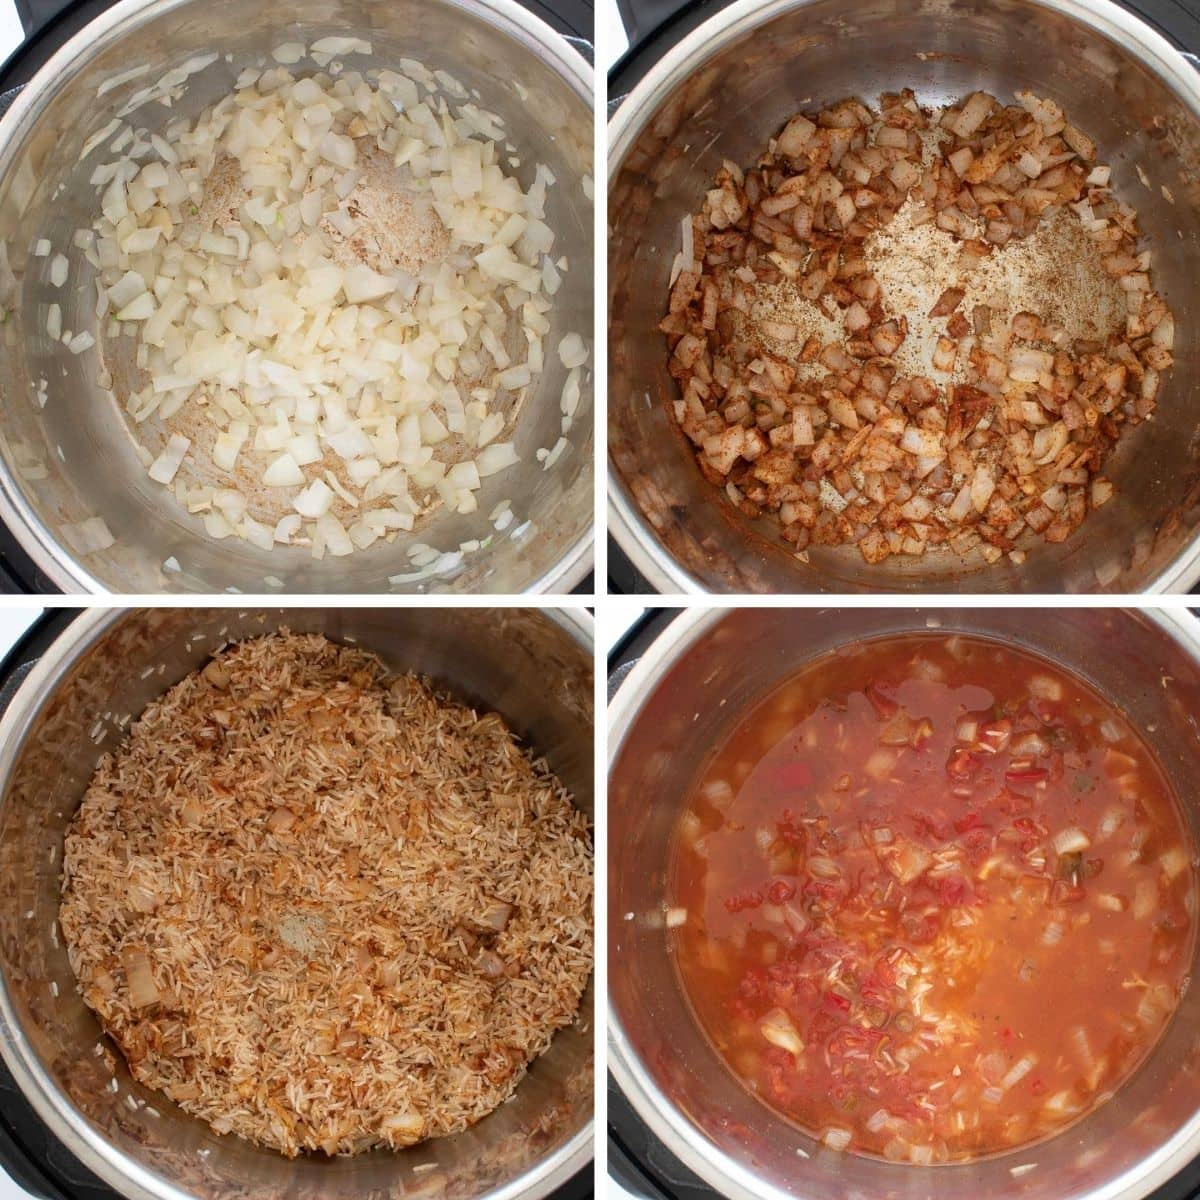 Step by step images showing how to make Spanish rice in your Instant Pot.